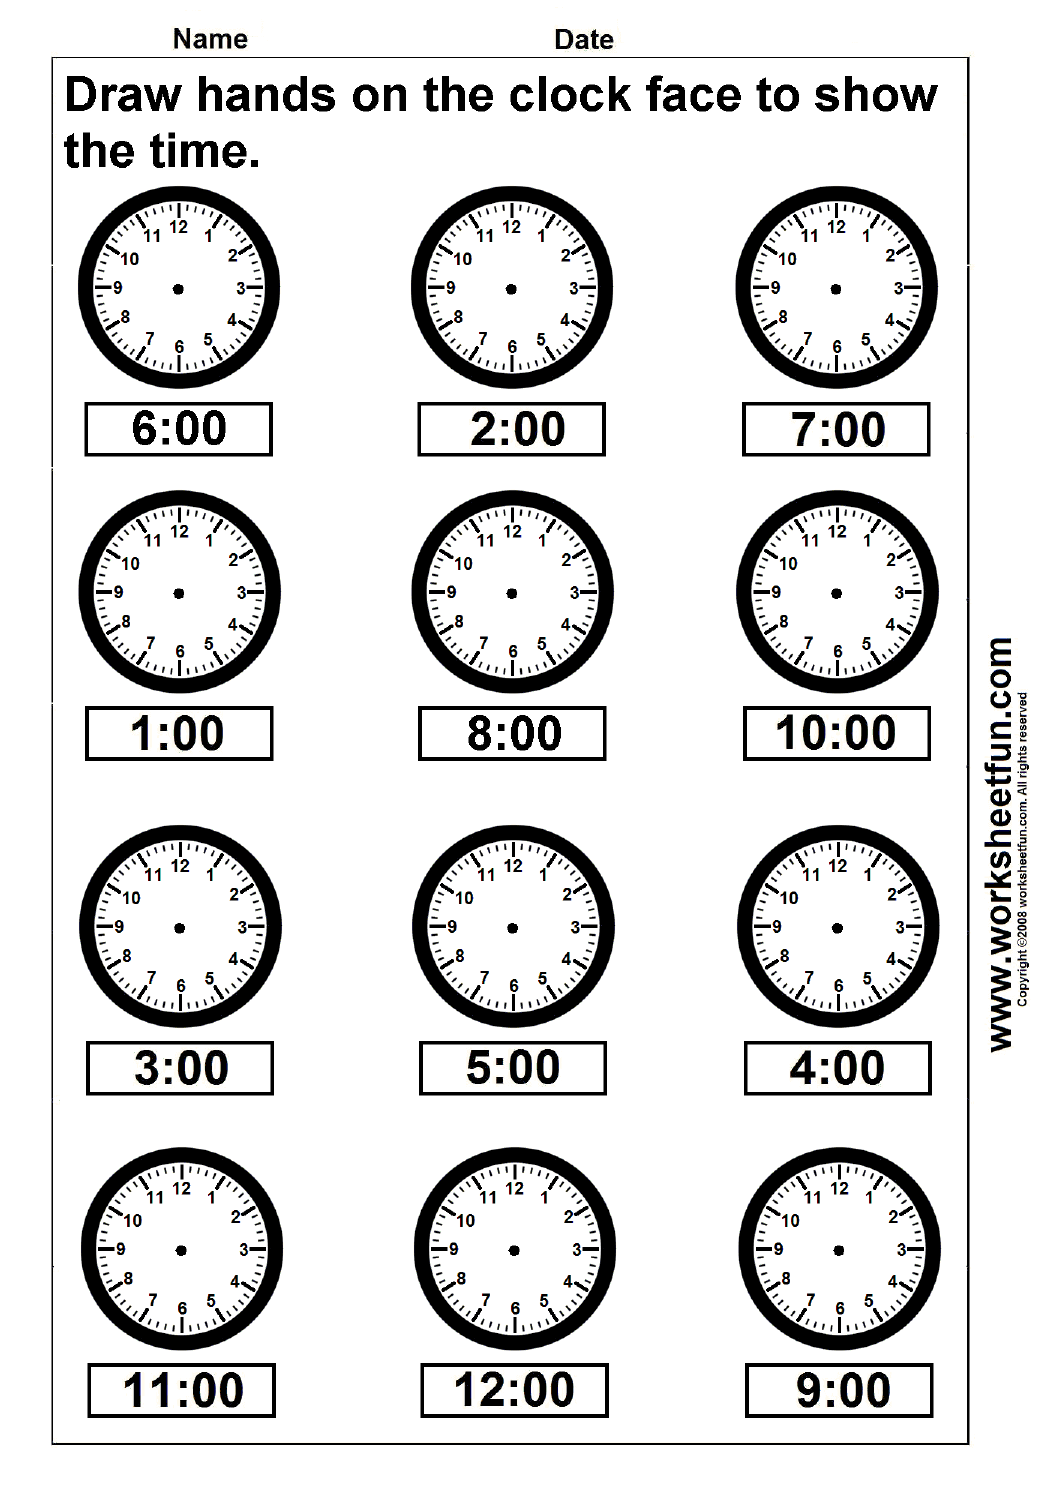 Worksheets Clock Faces Worksheets draw hands on the clock face to show time 4 worksheets worksheet 1 face